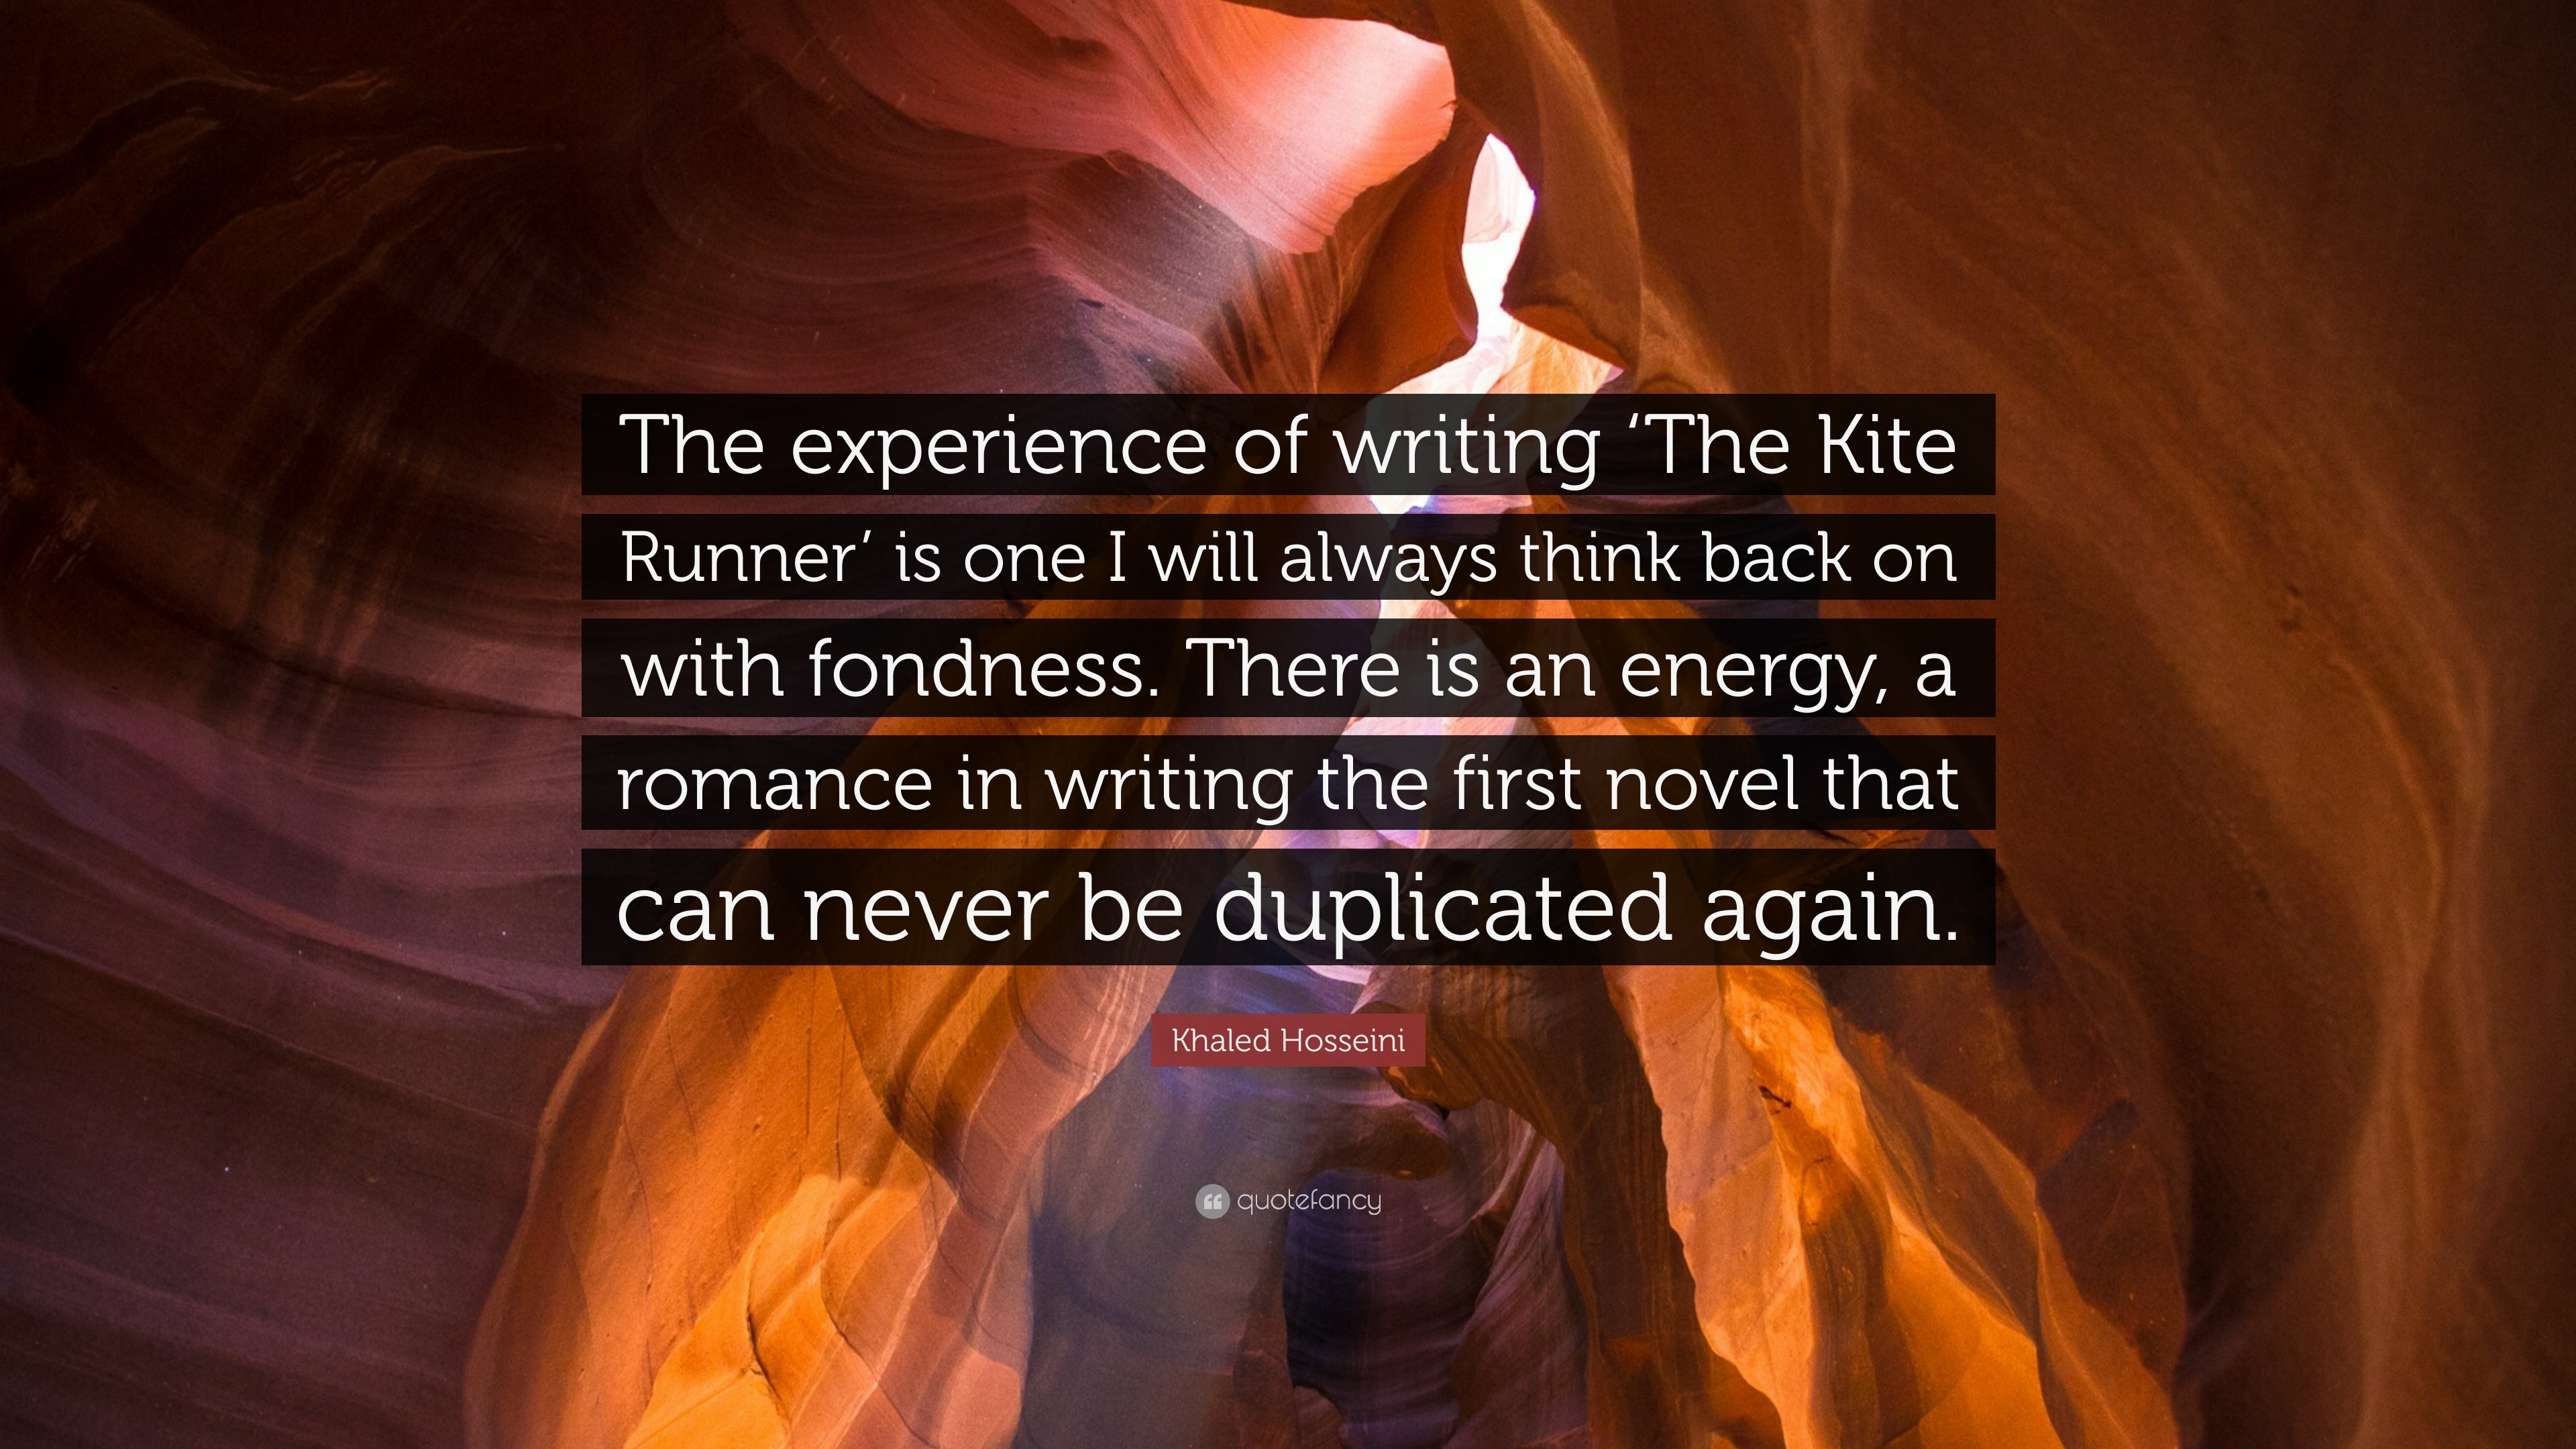 the kite runner by khaled hosseini english literature essay The kite runner khaled hosseini  critical essays themes in the kite runner  bookmark  forgiveness ideas about forgiveness permeate the kite runner.